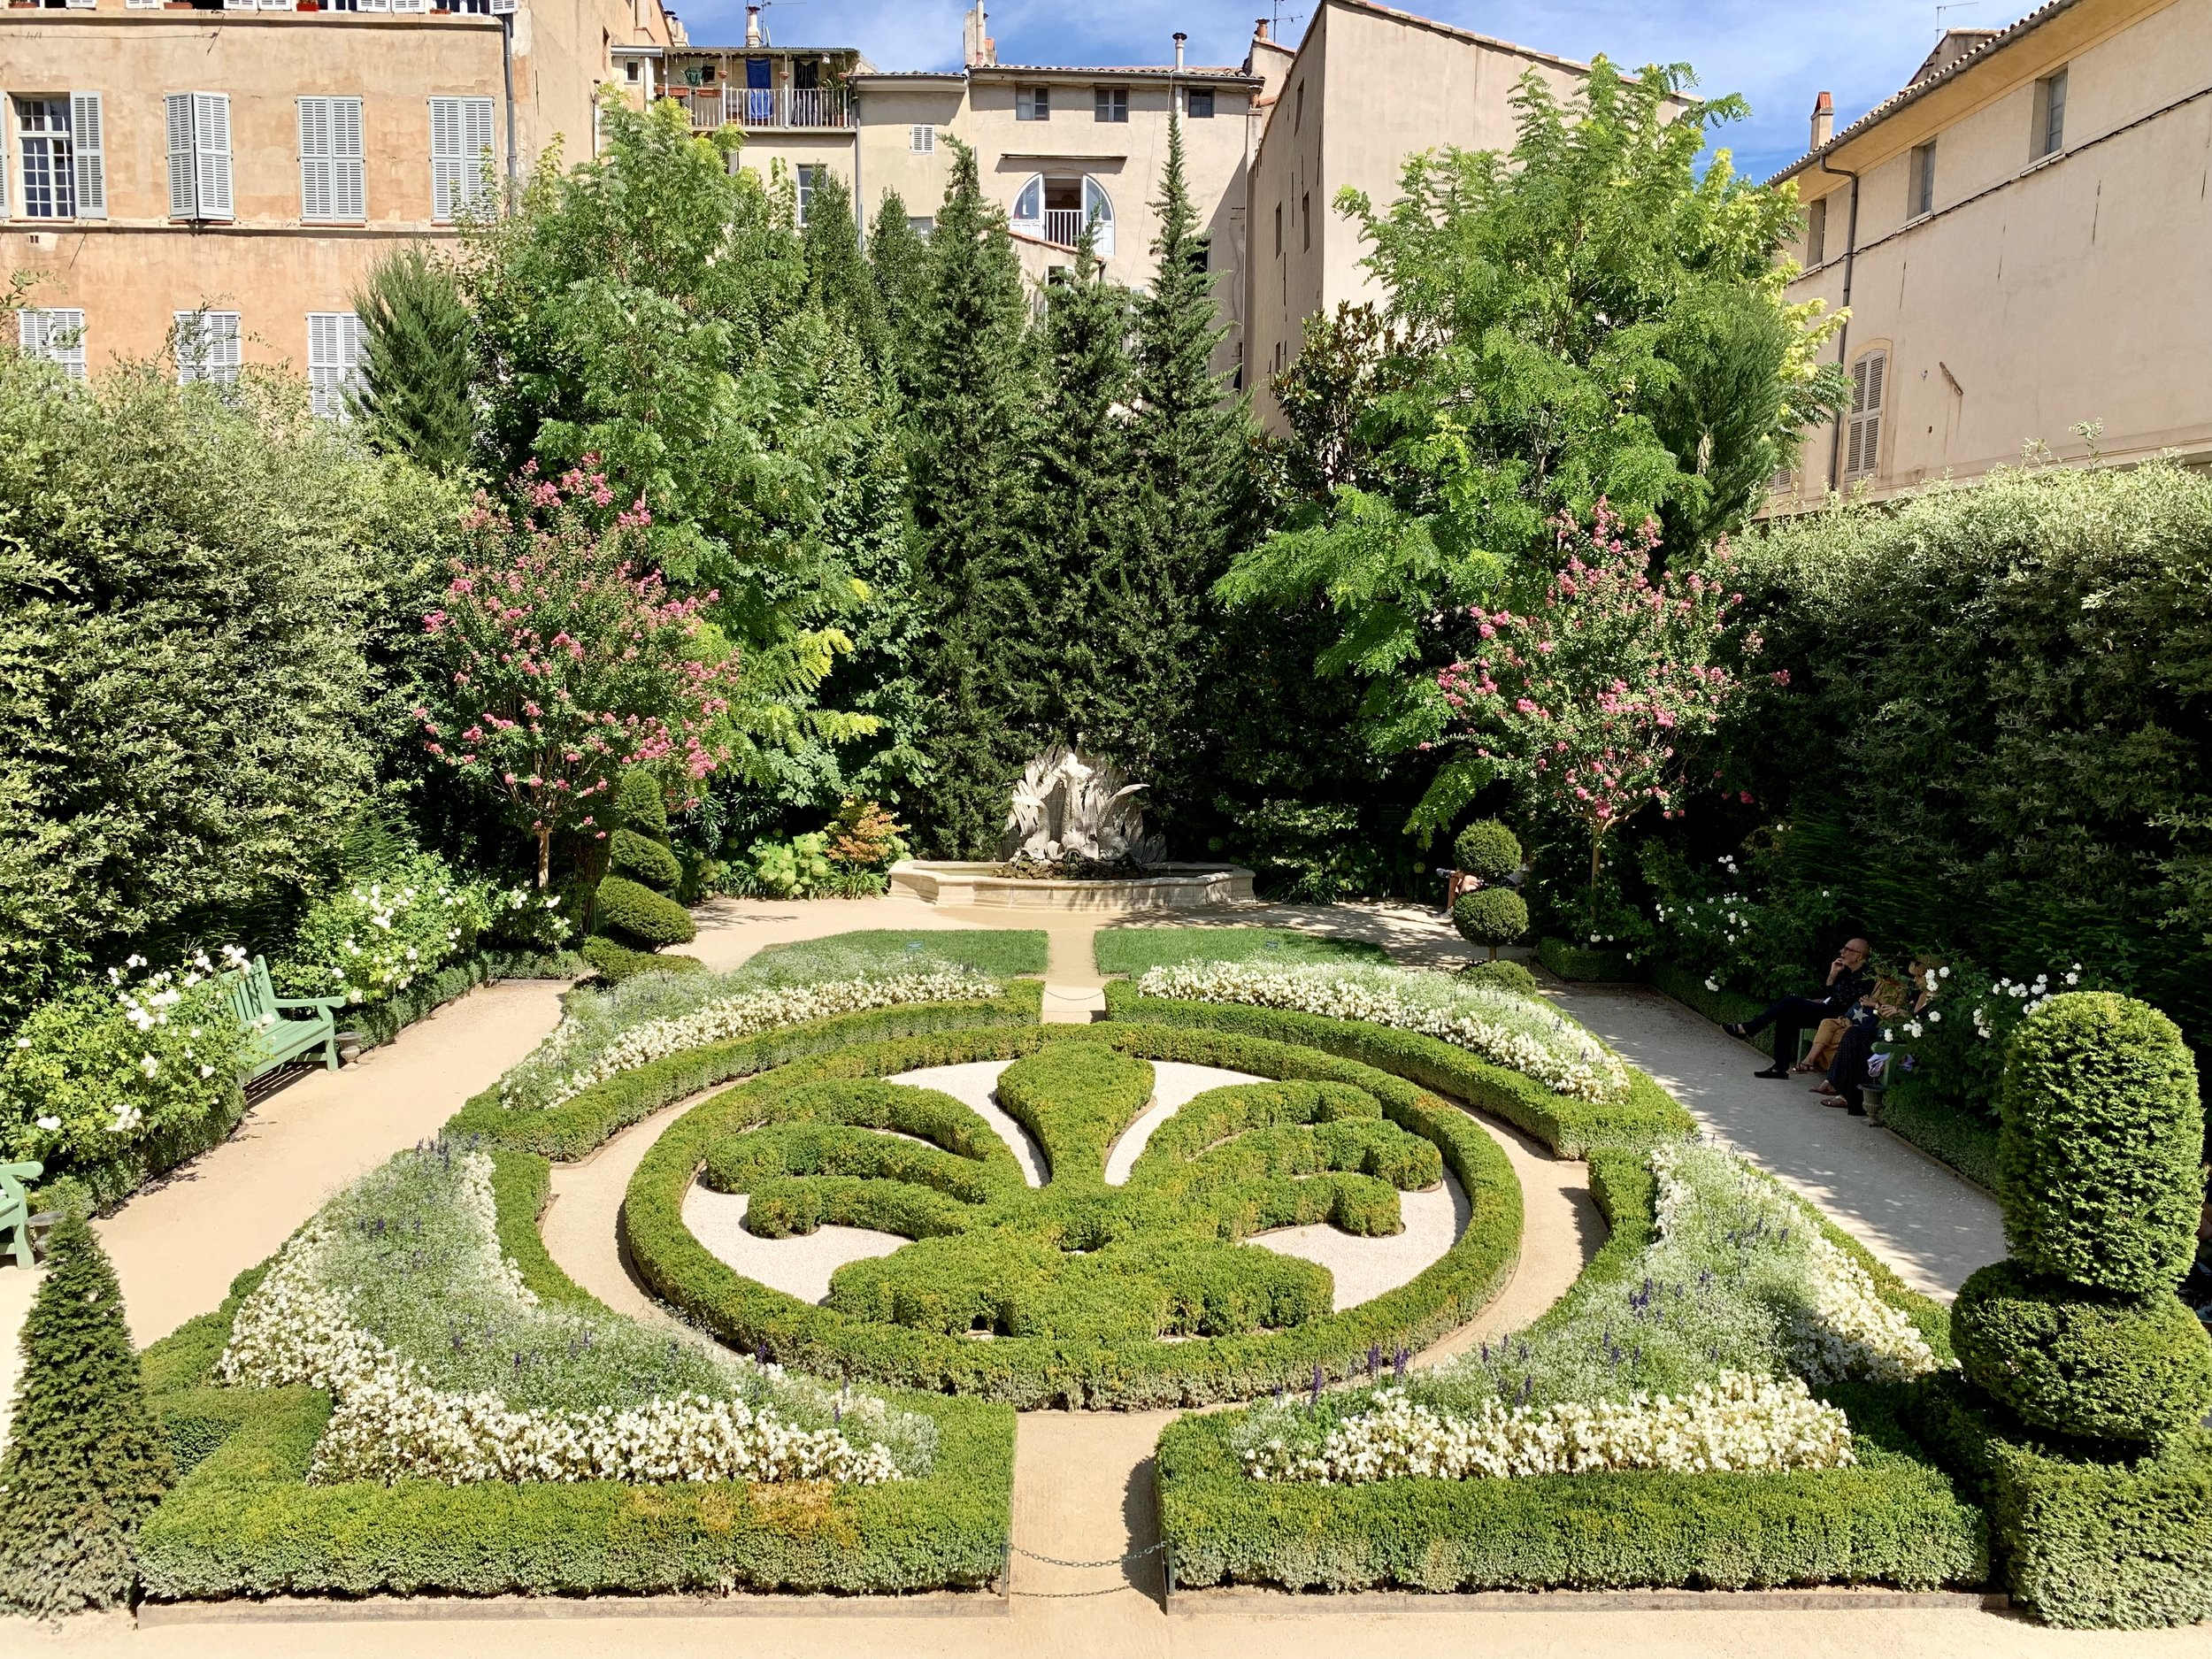 The interior gardens at the Caumont Centre d'Art in Aix-en-Provence, France. August 17, 2019.